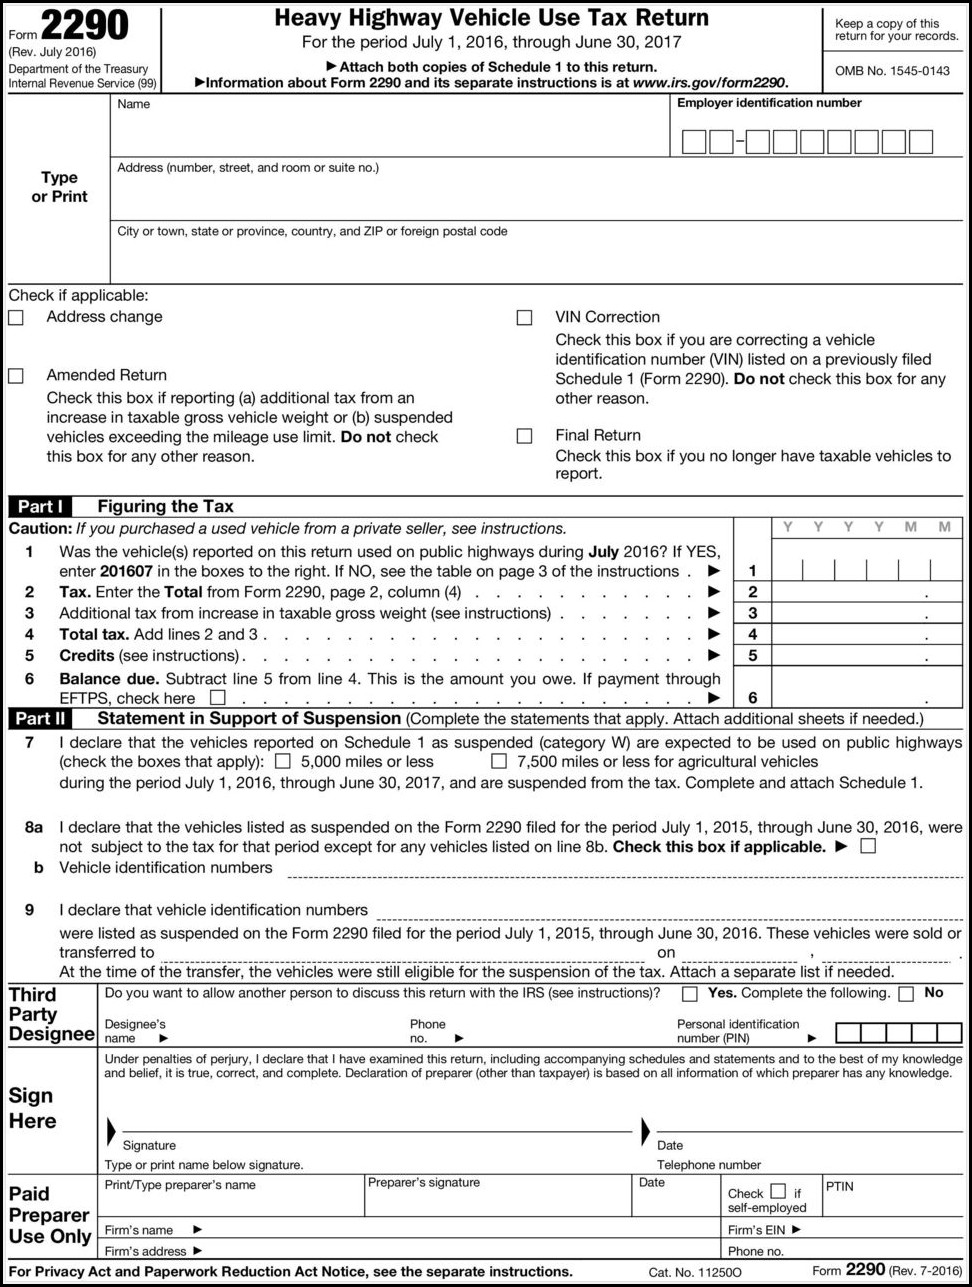 Instructions For Form 2290 Rev July 2018